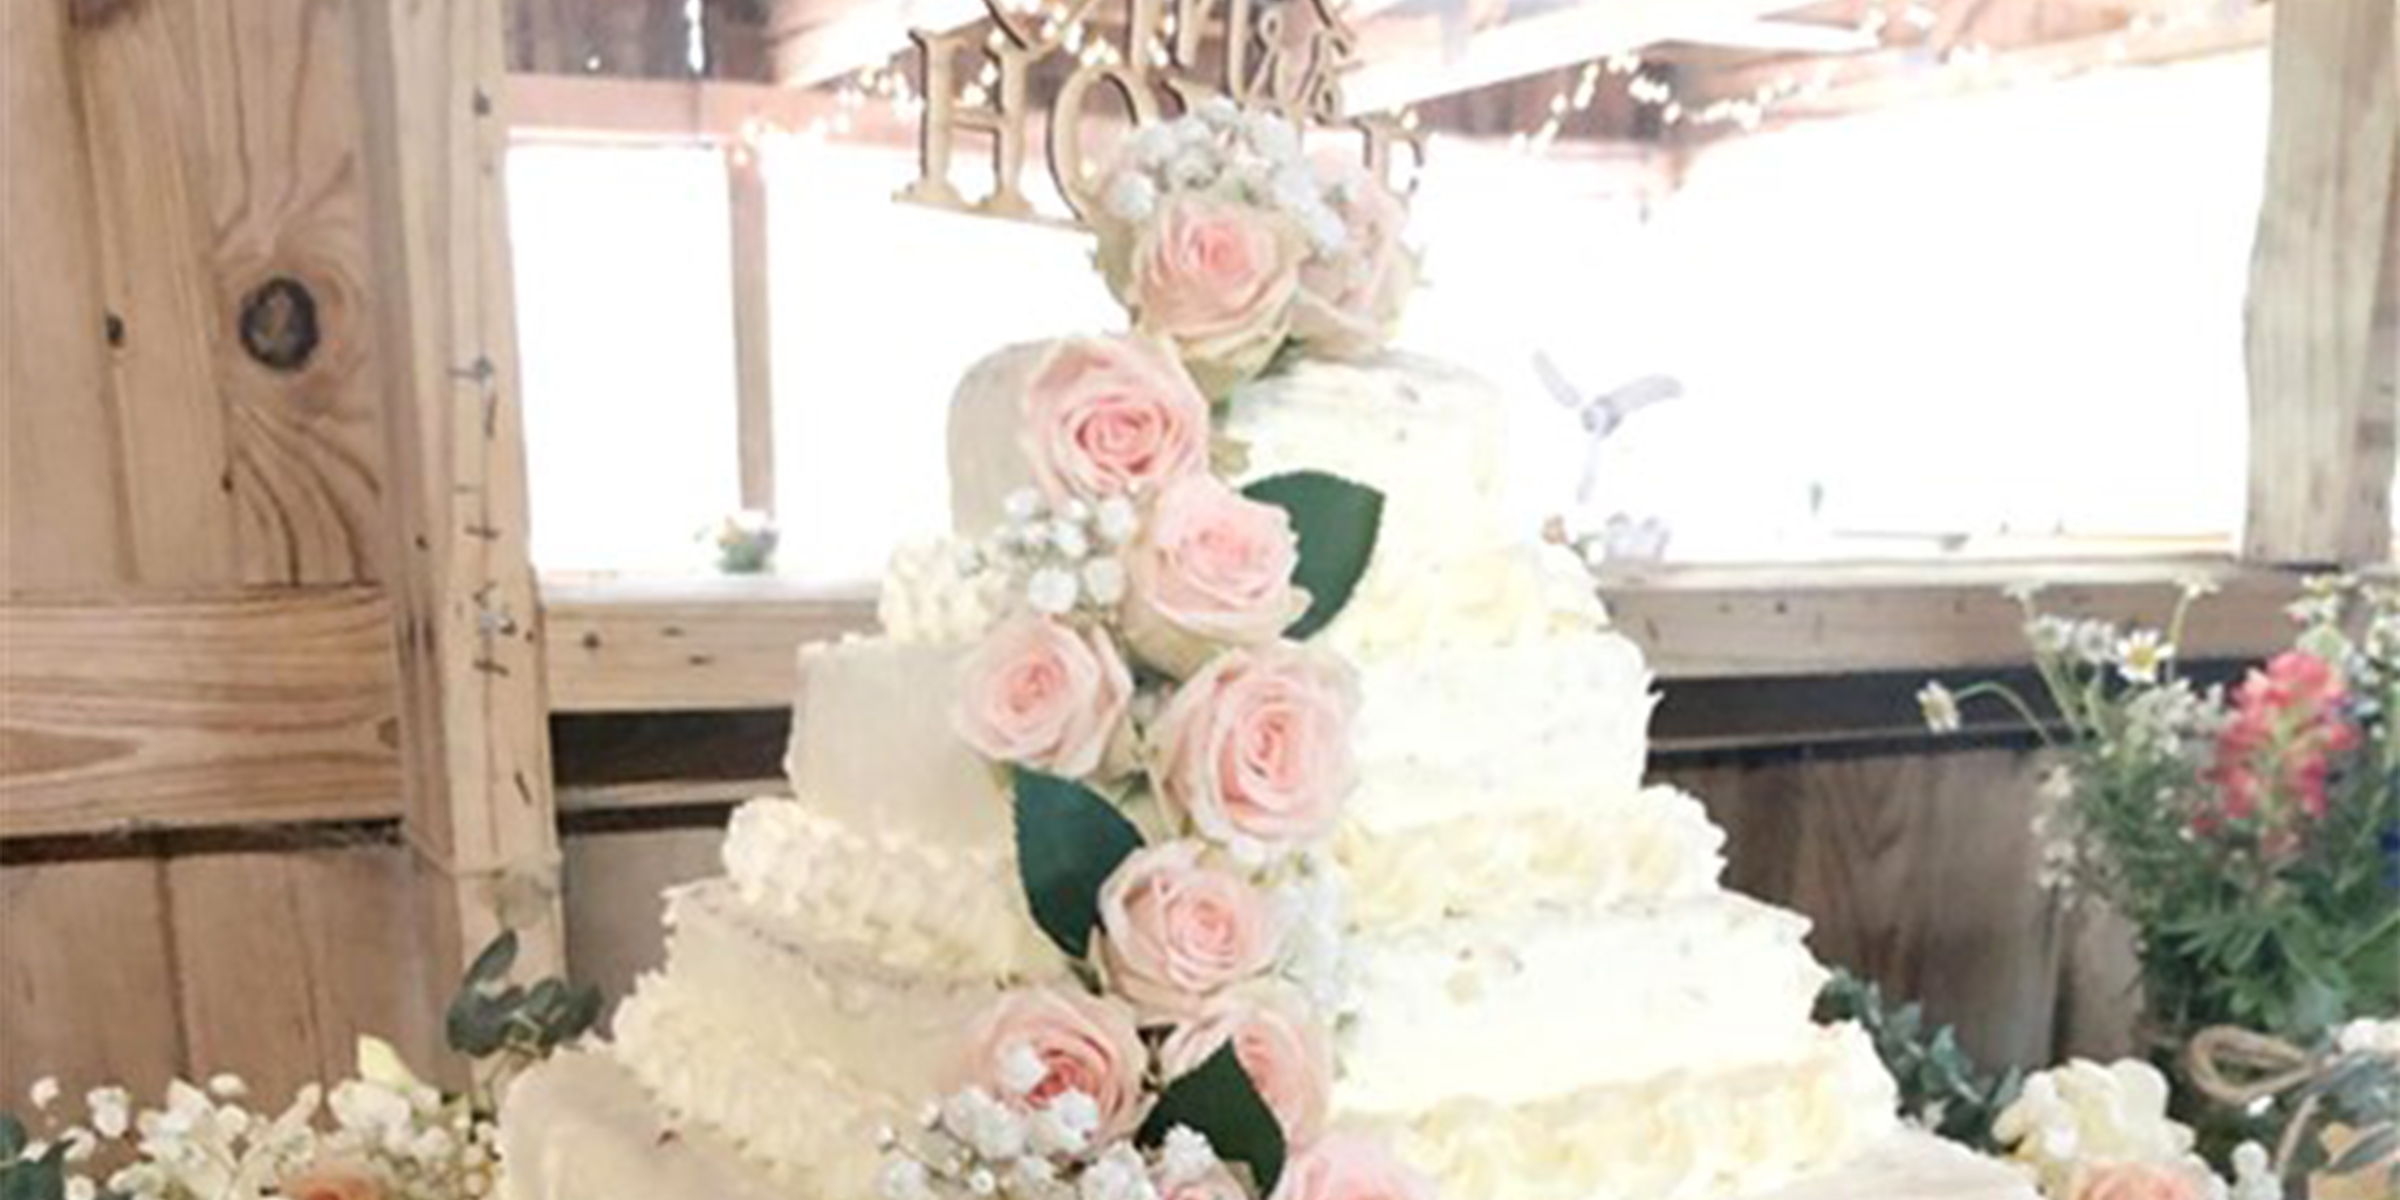 A bride\u0027s brother turned Costco cakes into a whimsical